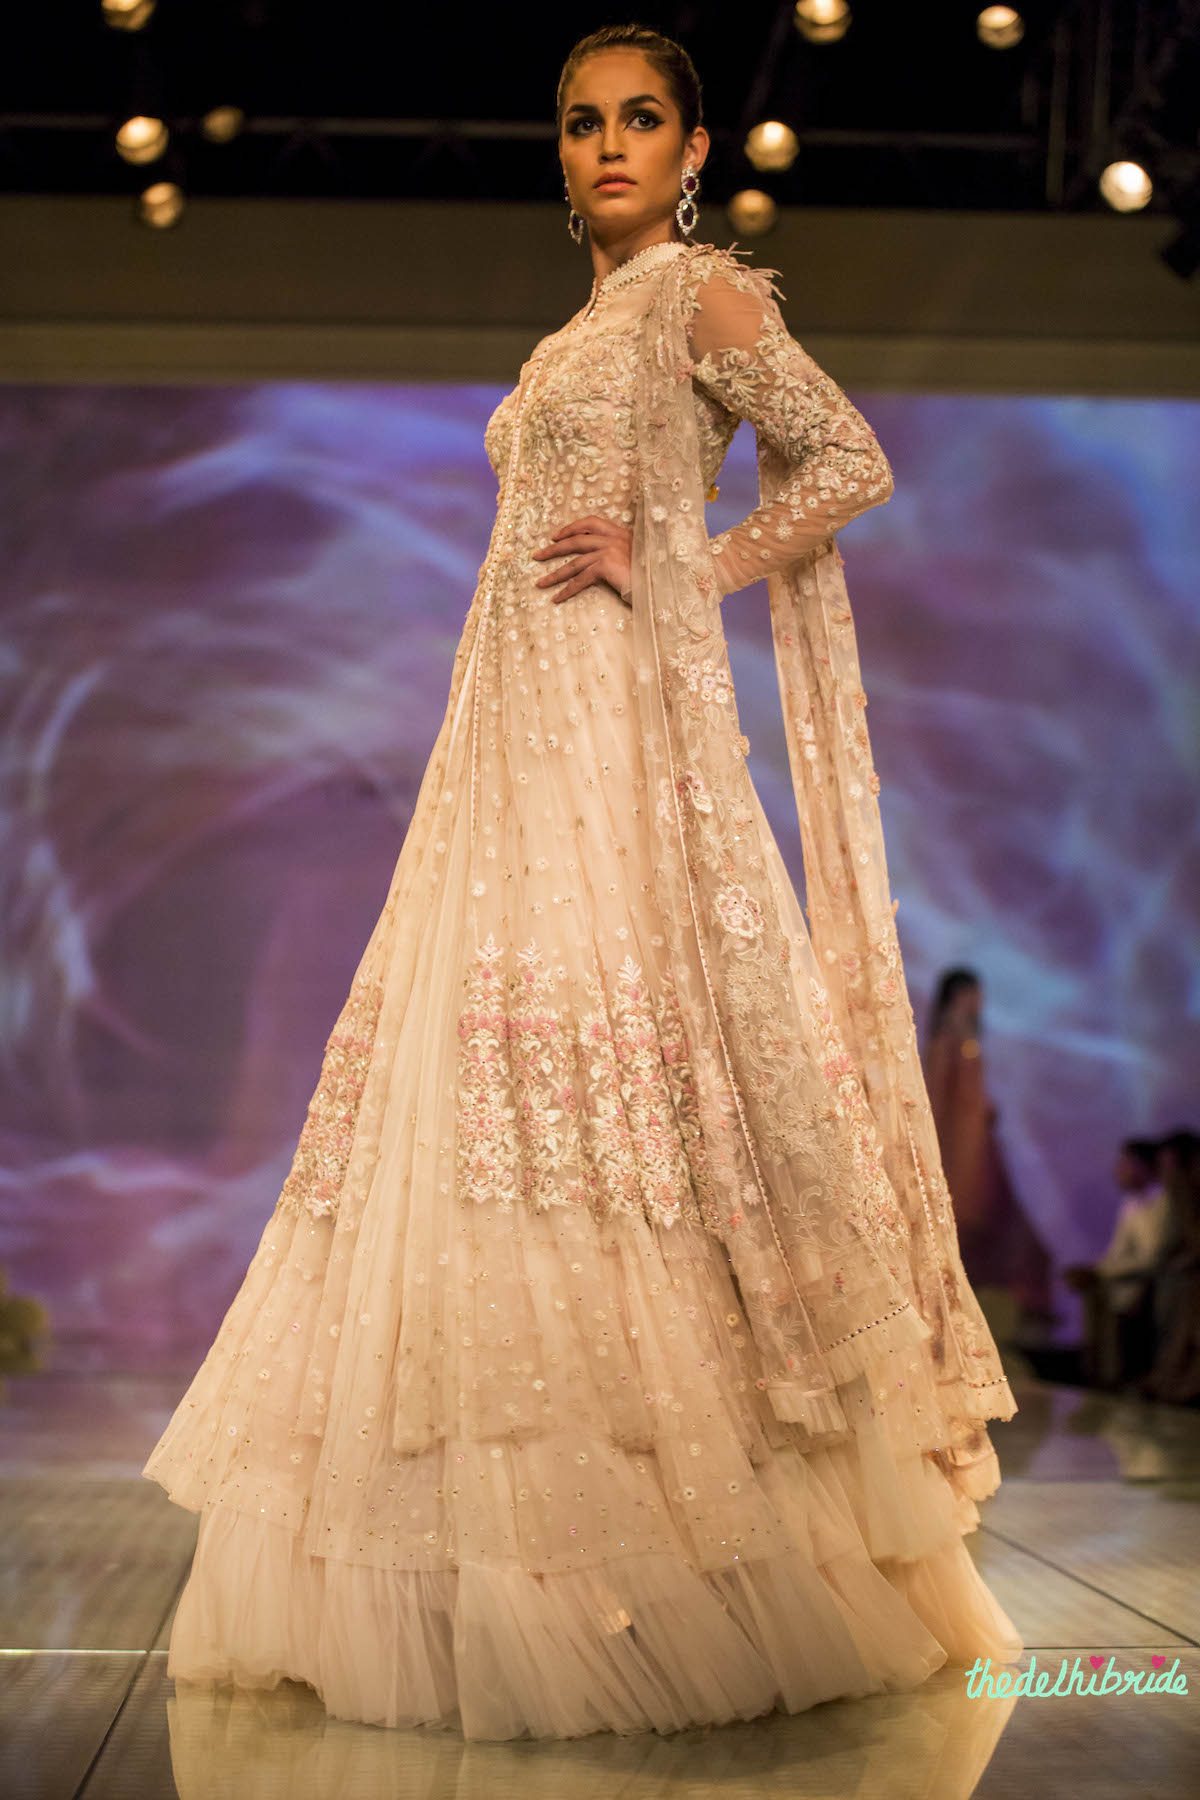 tarun tahiliani at india bridal fashion week 2014